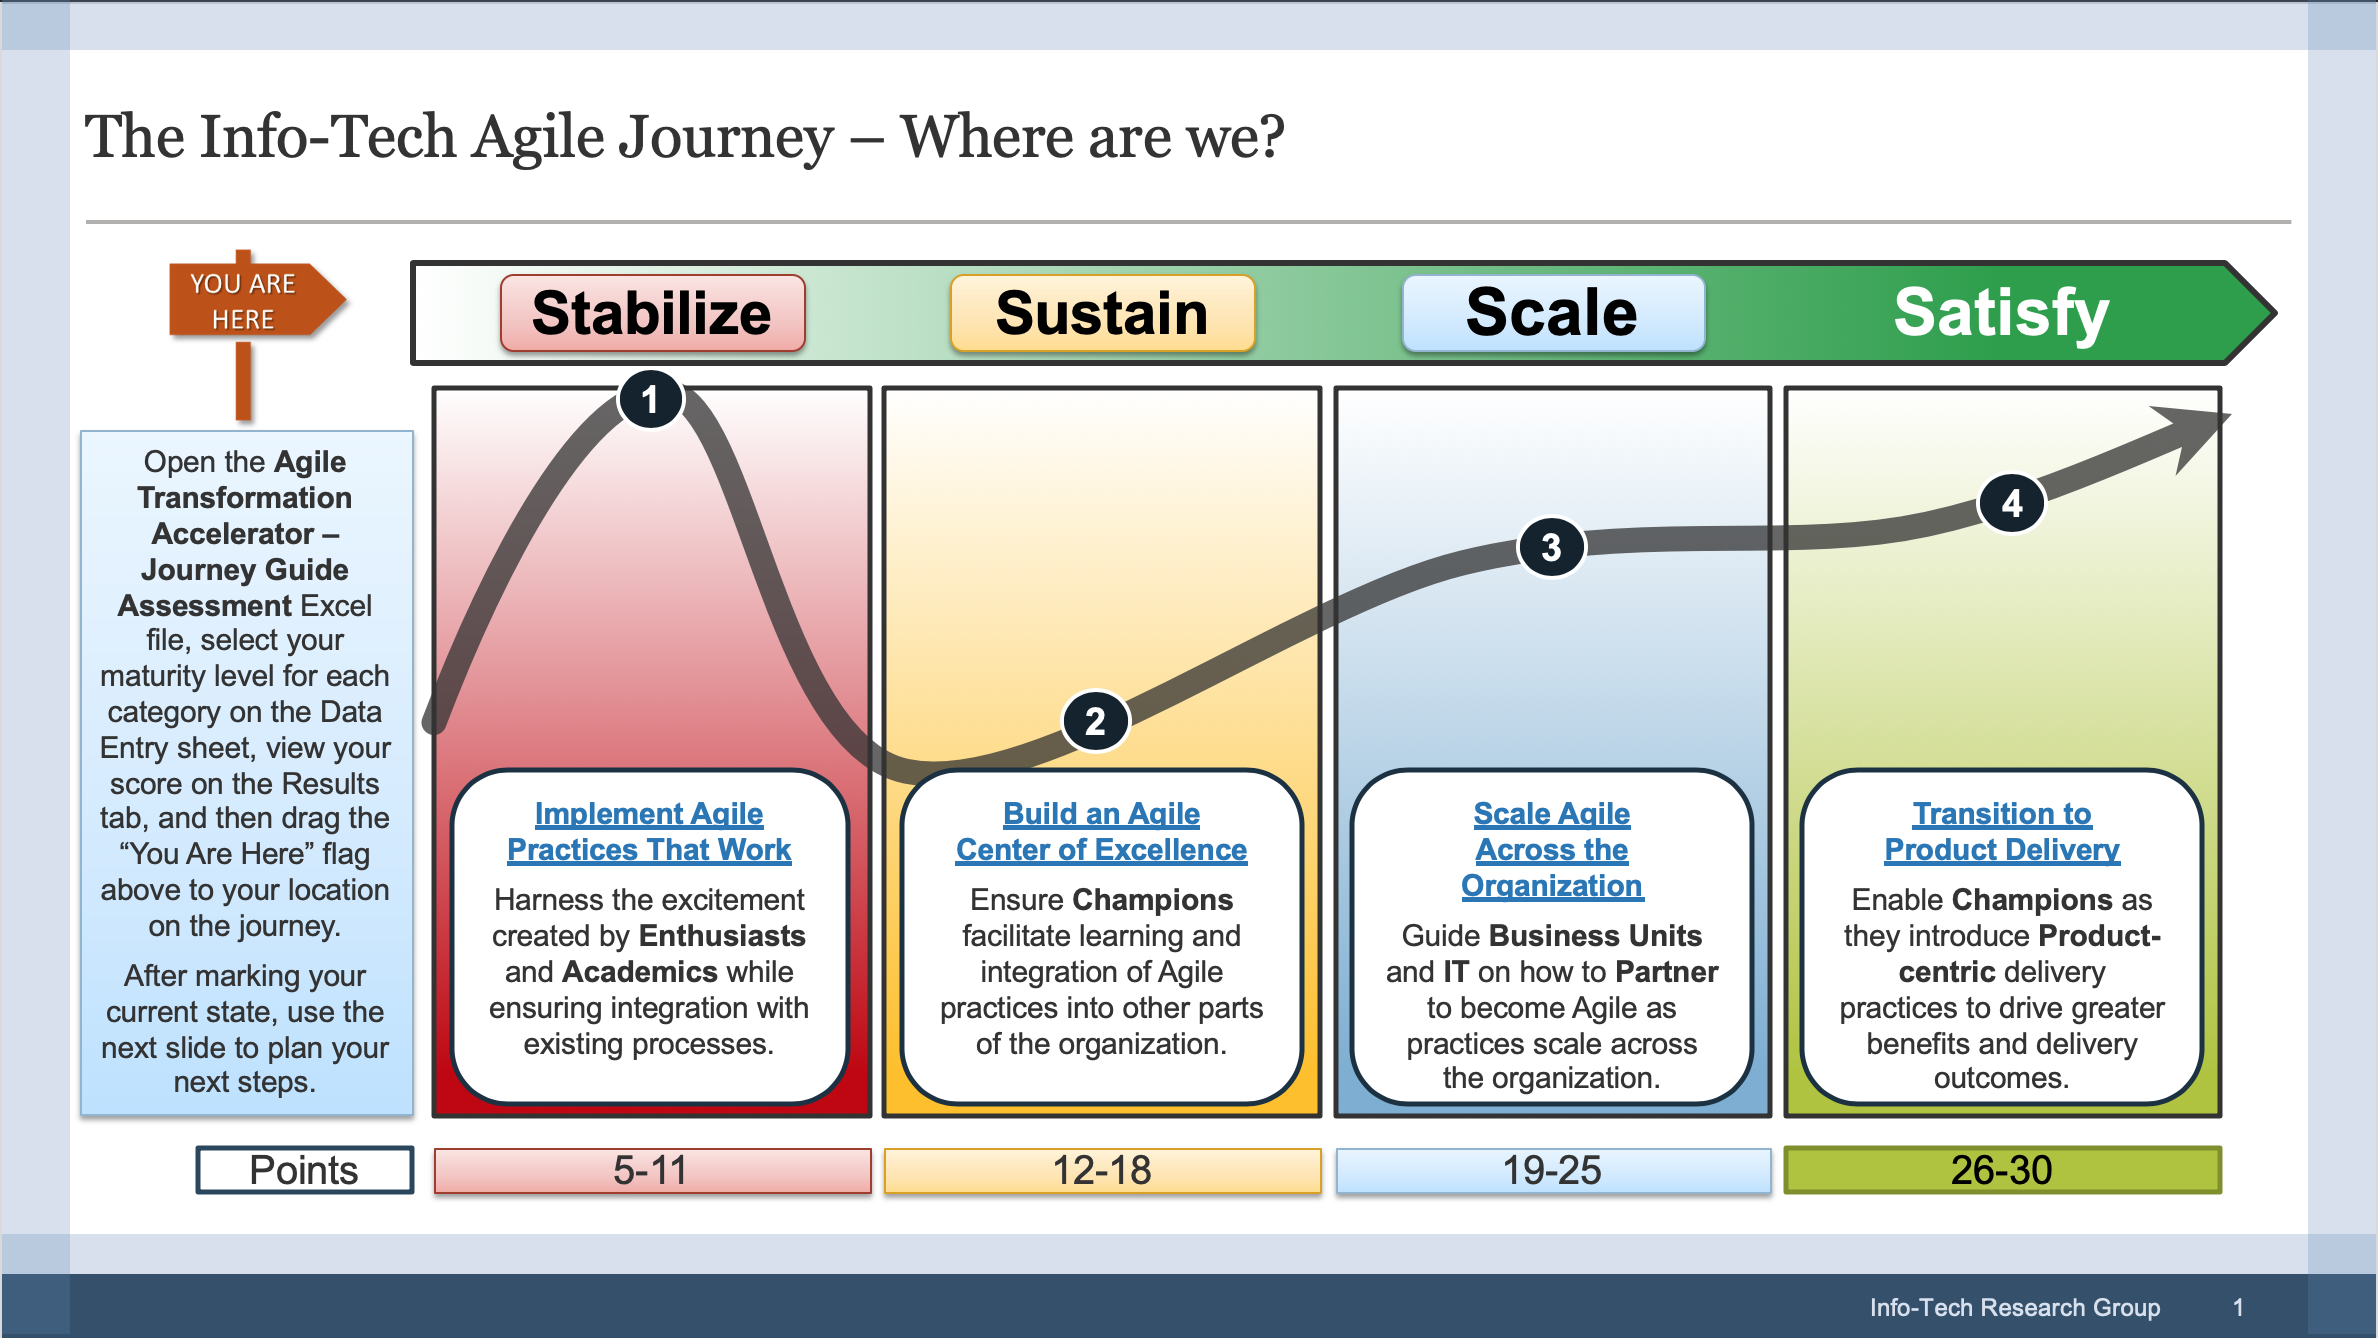 Conduct the Agile Journey Guide Assessment